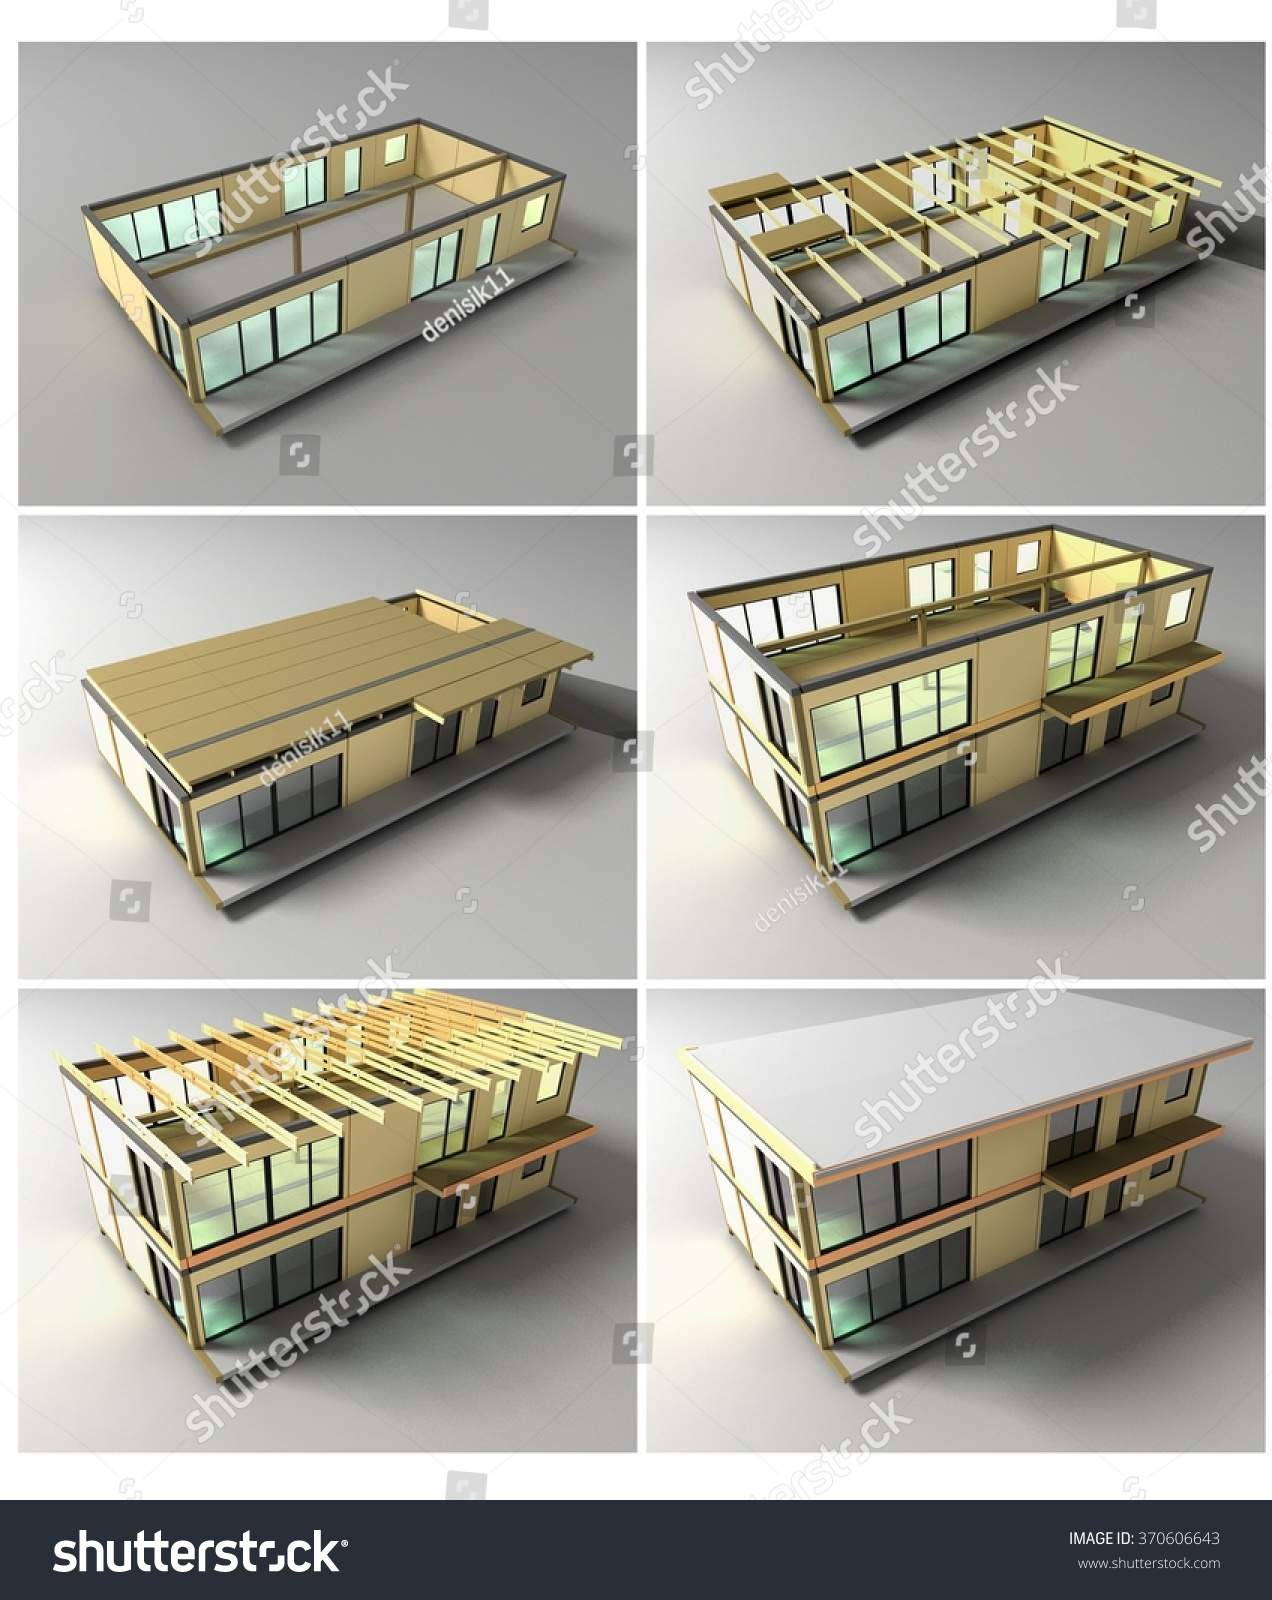 Stages Construction Stages Building House On Stock Illustration ...